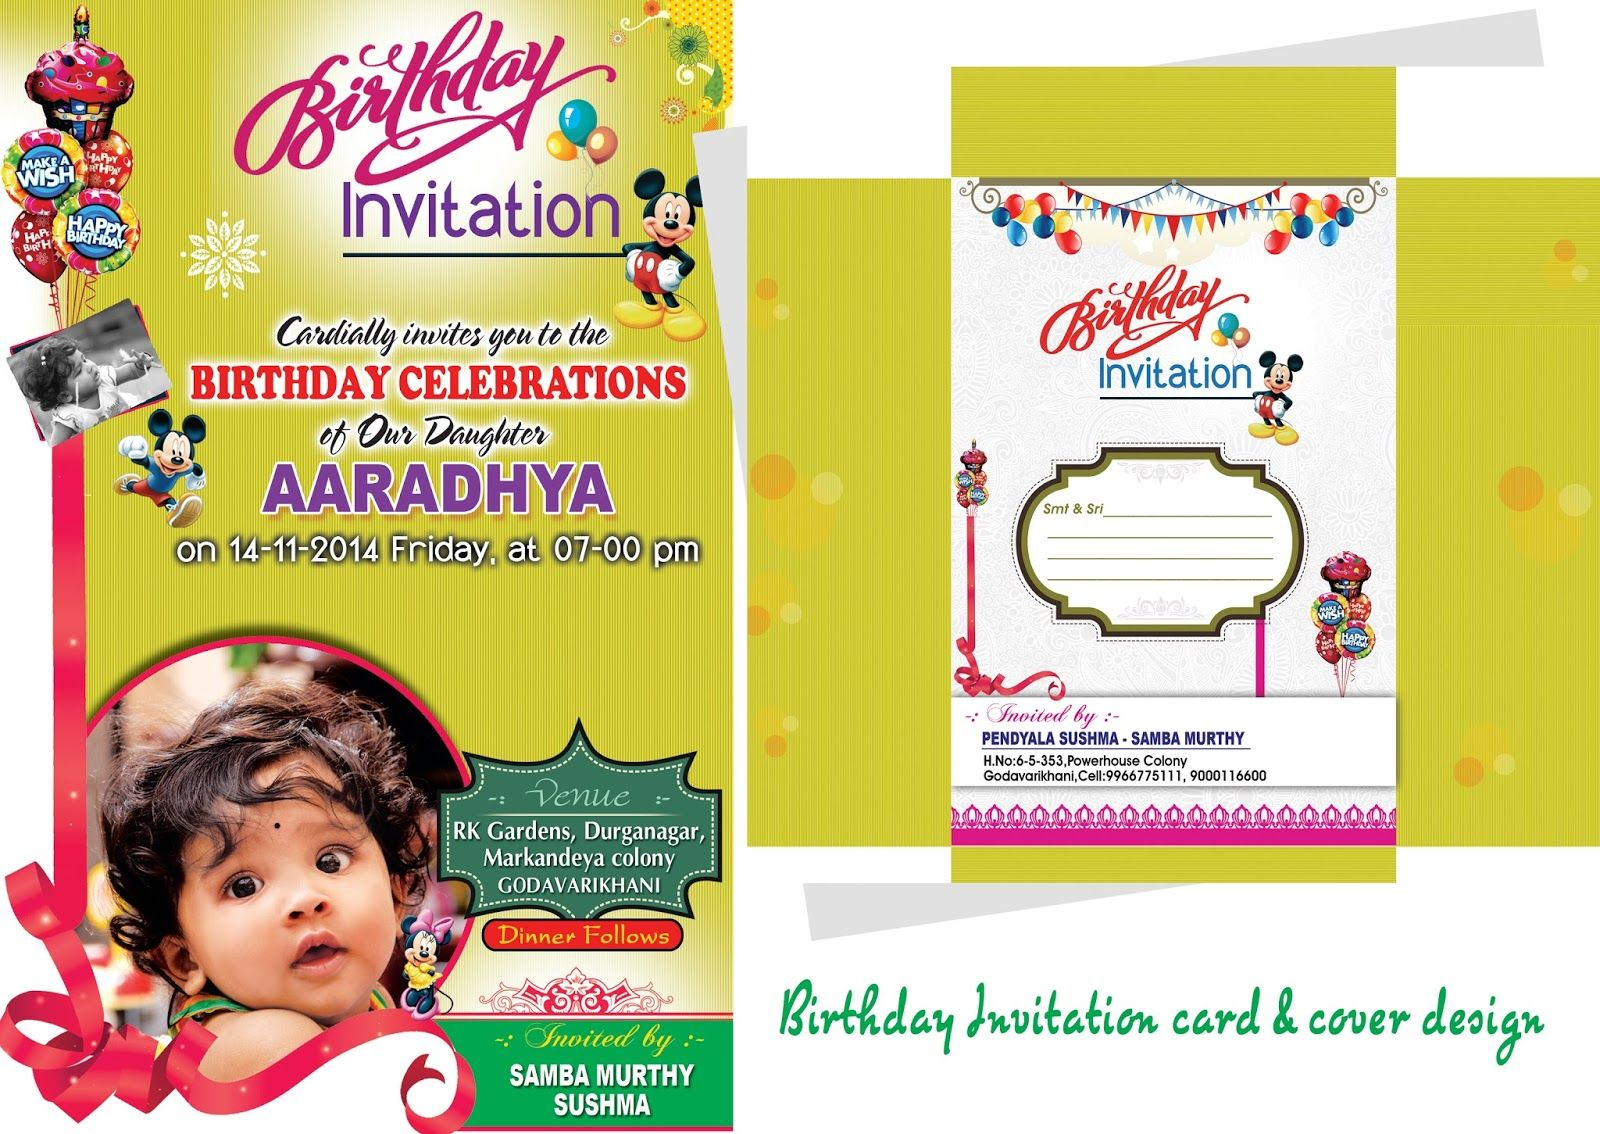 Birthday invitation card psd template free birthday designs birthday invitation card psd template free stopboris Choice Image